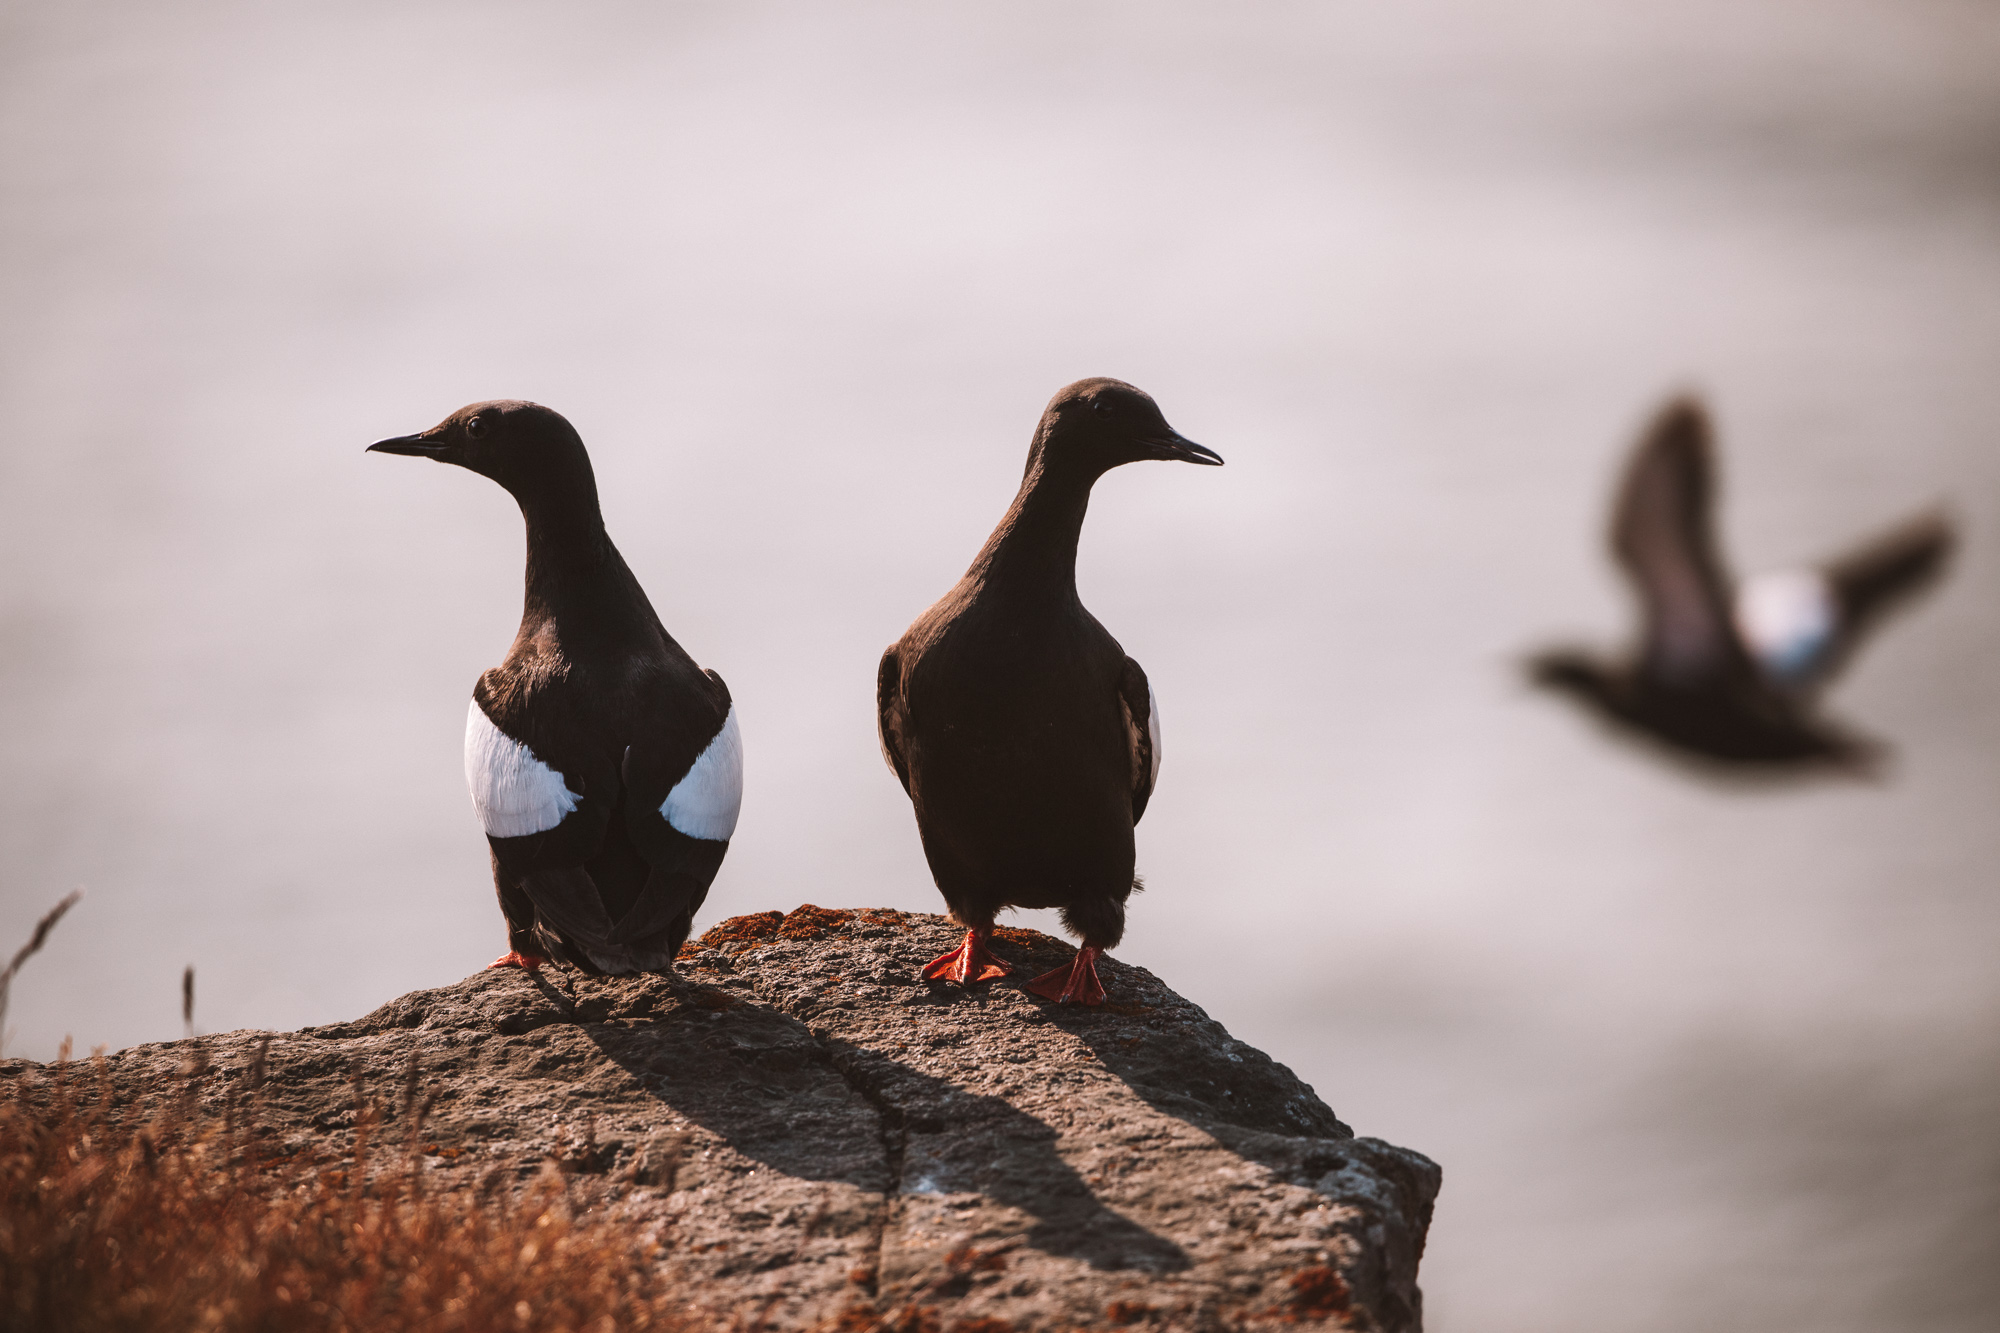 Black guillemot birds in Spitsbergen, Svalbard, Norway